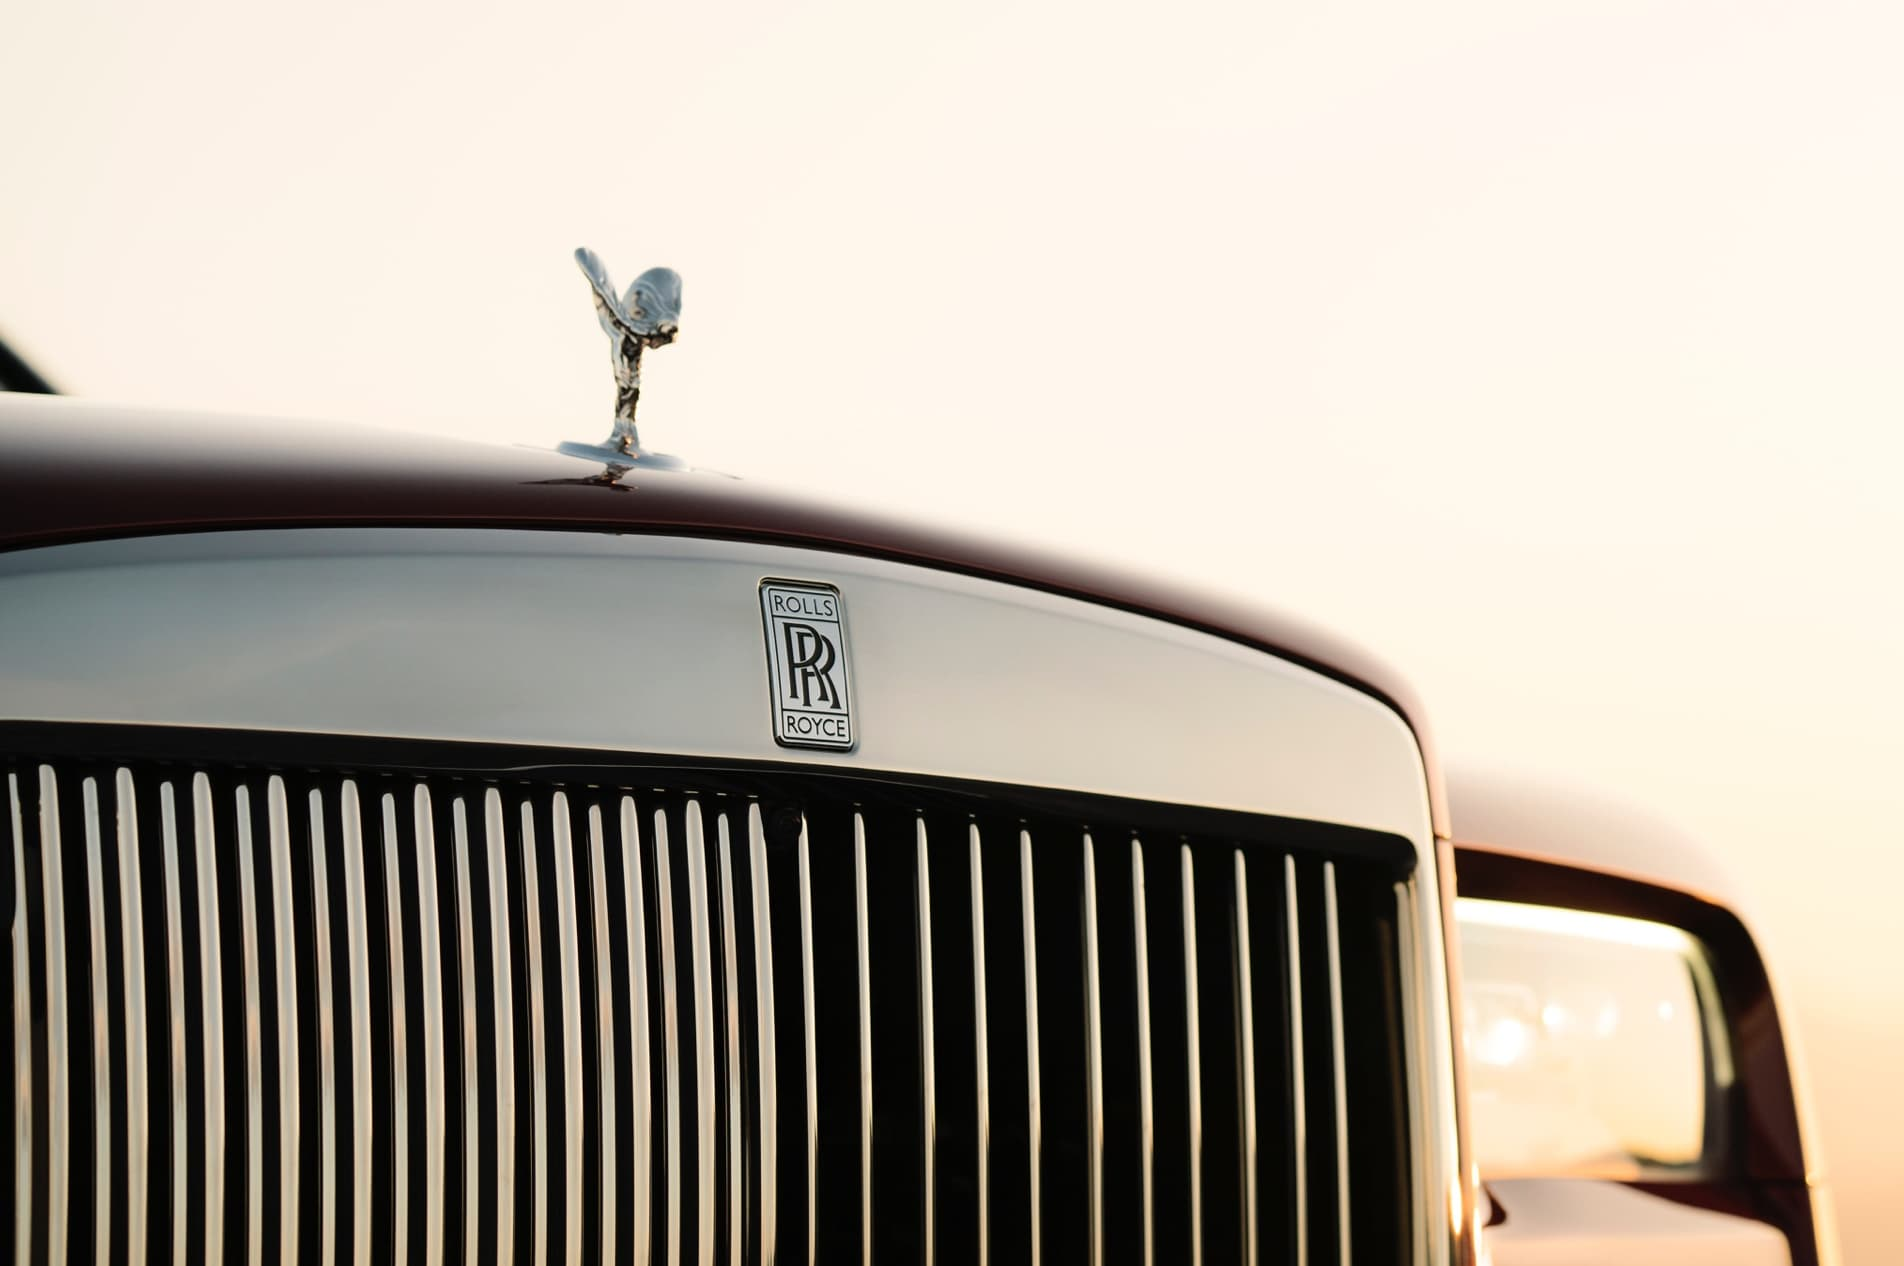 Front grille of Rolls-Royce motor car